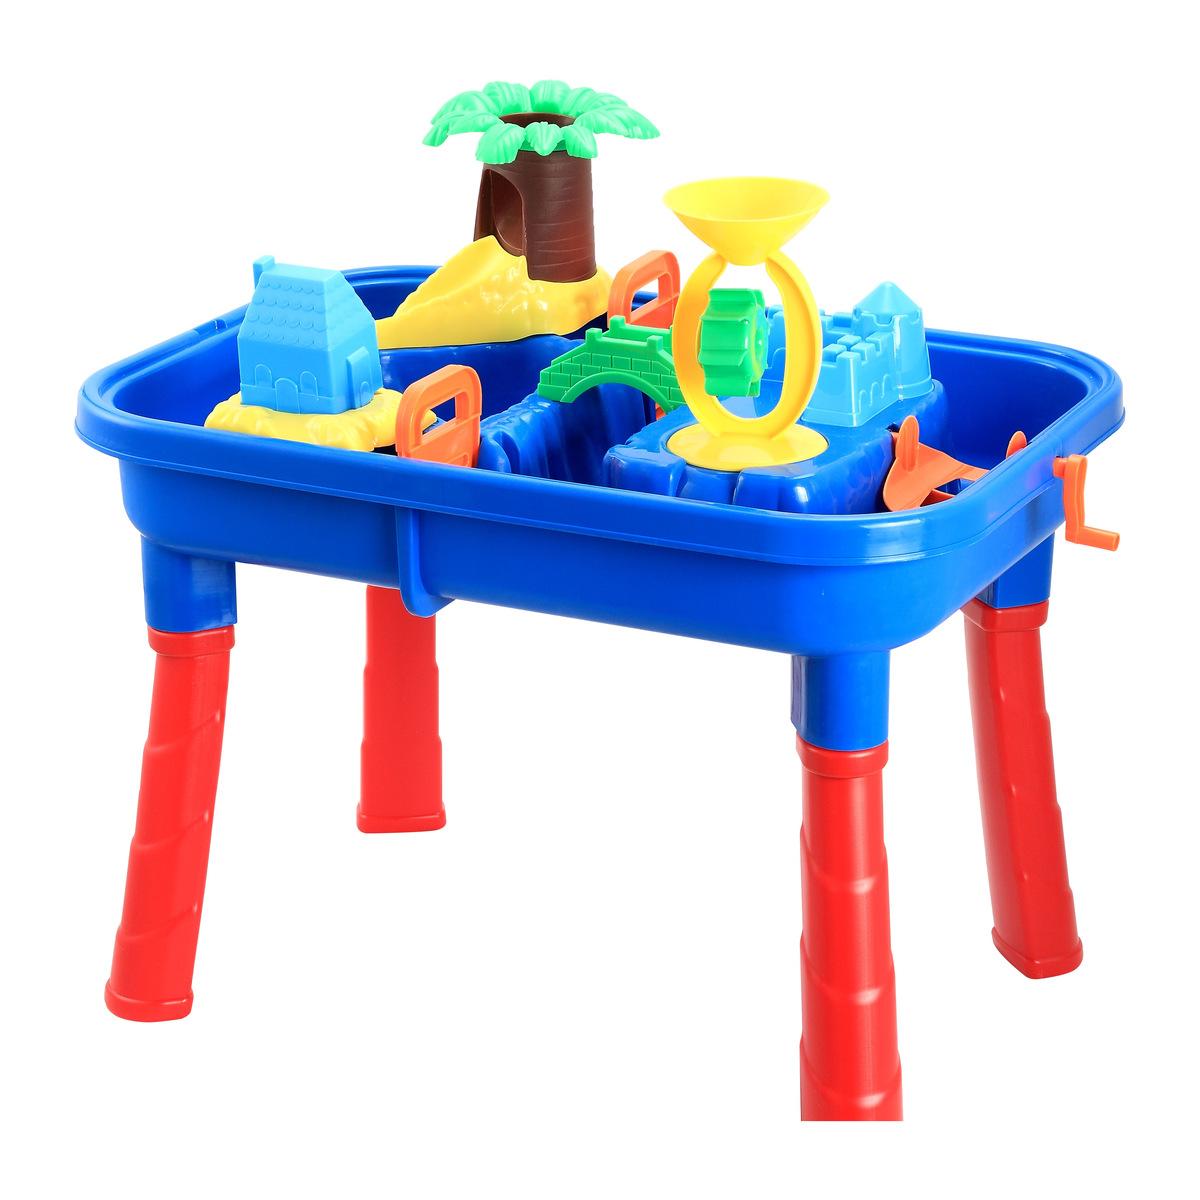 sand and water play table kmart. Black Bedroom Furniture Sets. Home Design Ideas